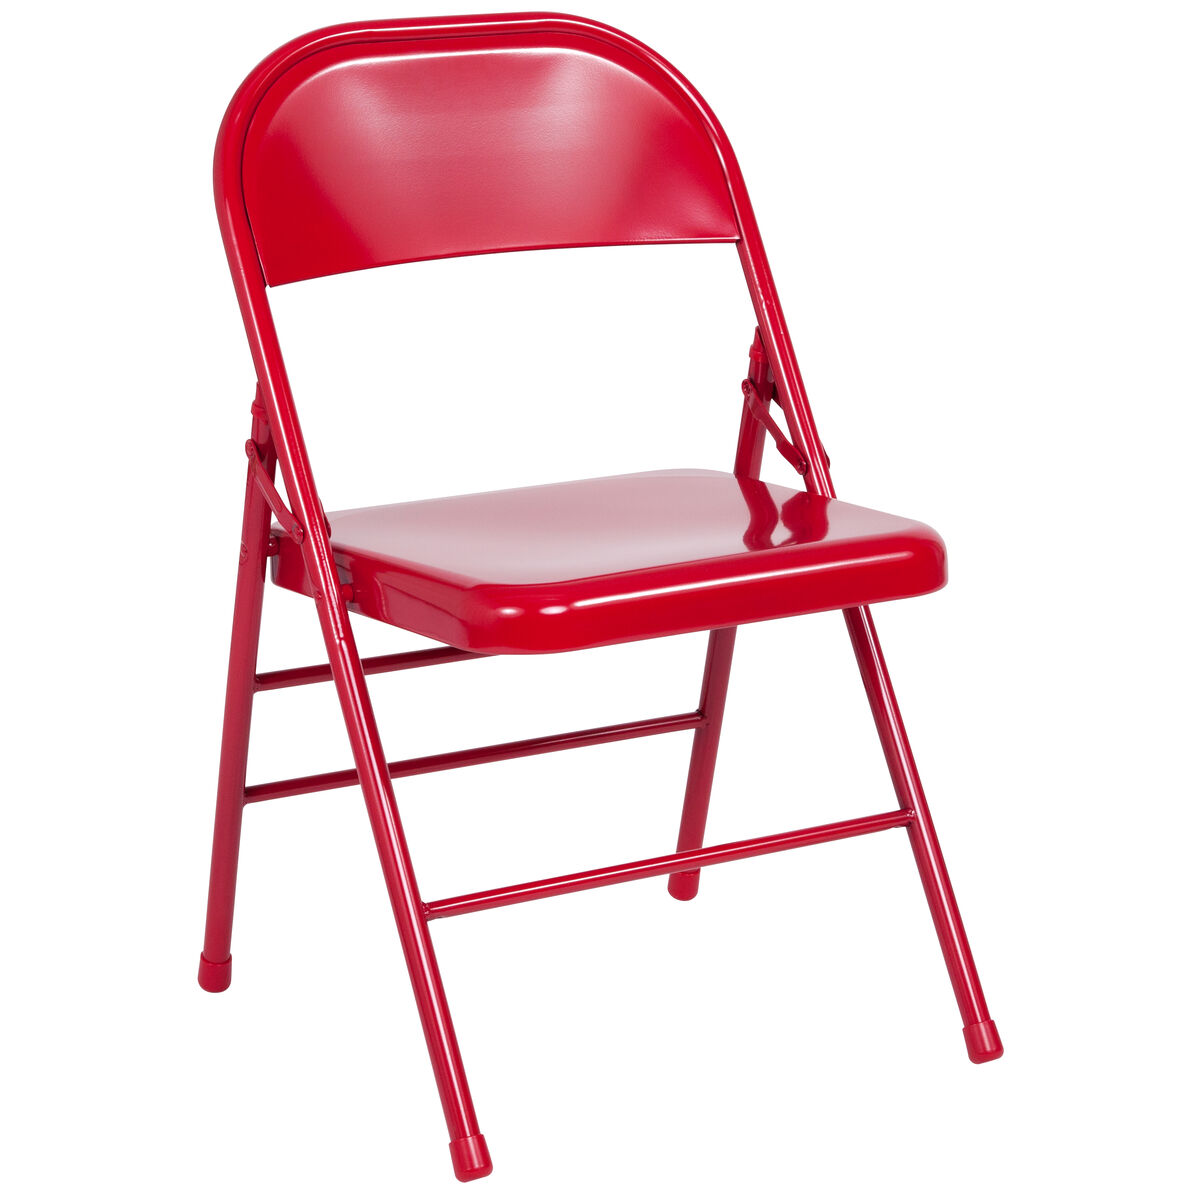 Outstanding Hercules Series Triple Braced Double Hinged Red Metal Folding Chair Caraccident5 Cool Chair Designs And Ideas Caraccident5Info